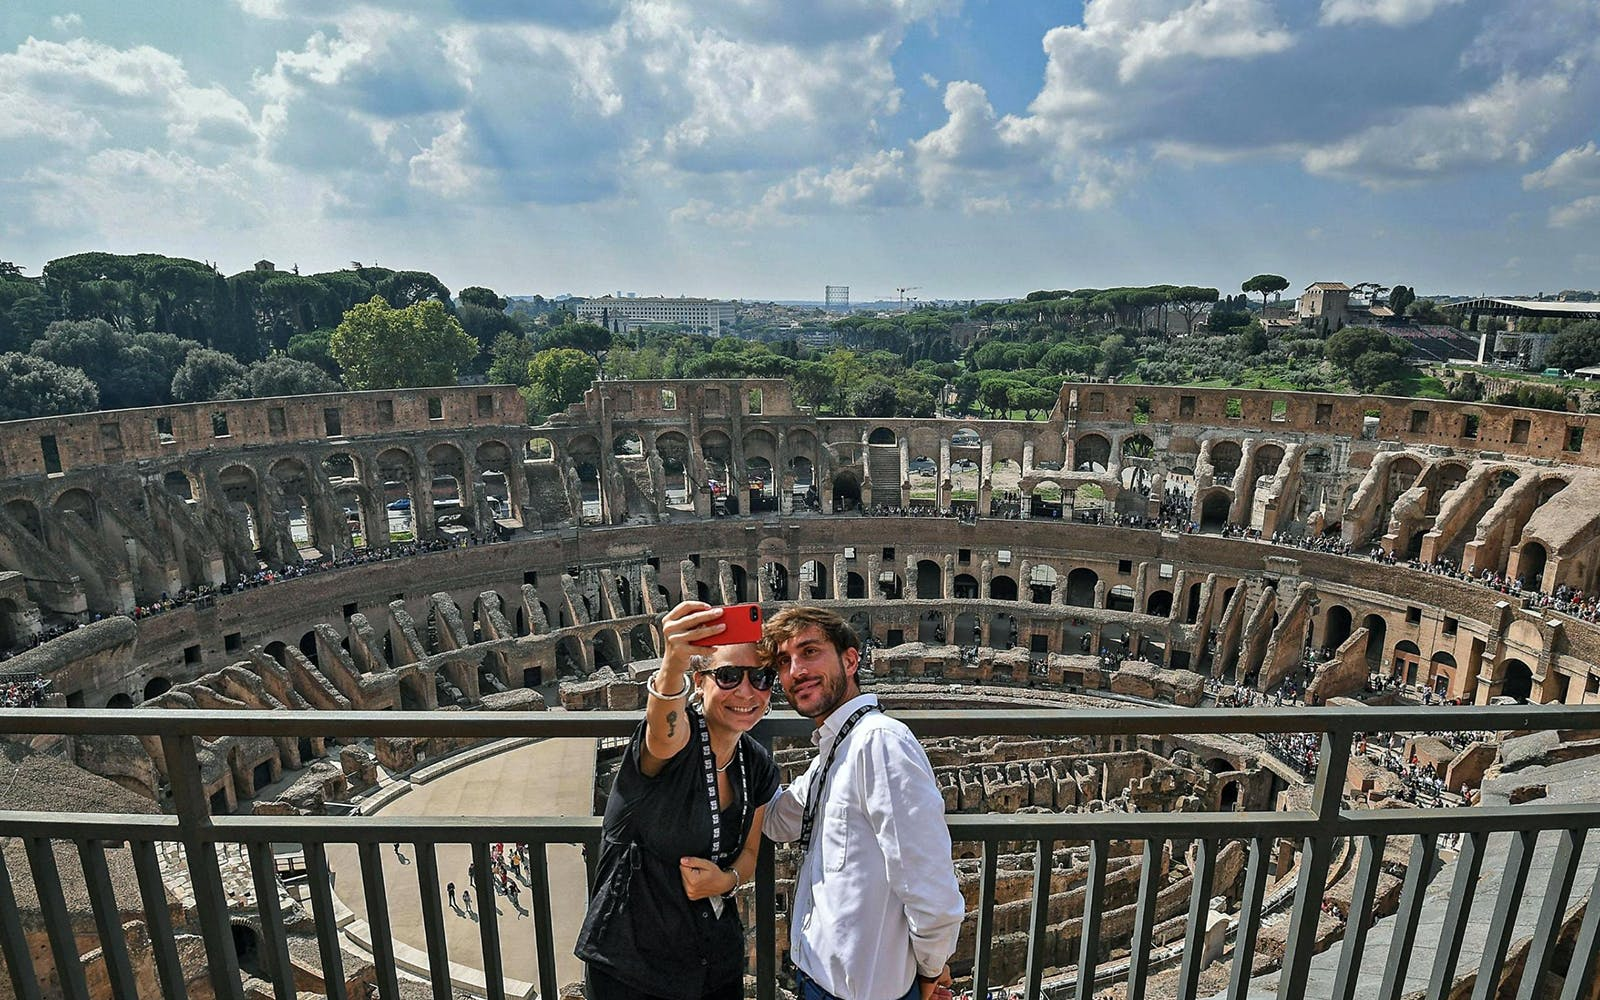 colosseum belvedere vip top tier access tour with roman forum and palatine hill-2